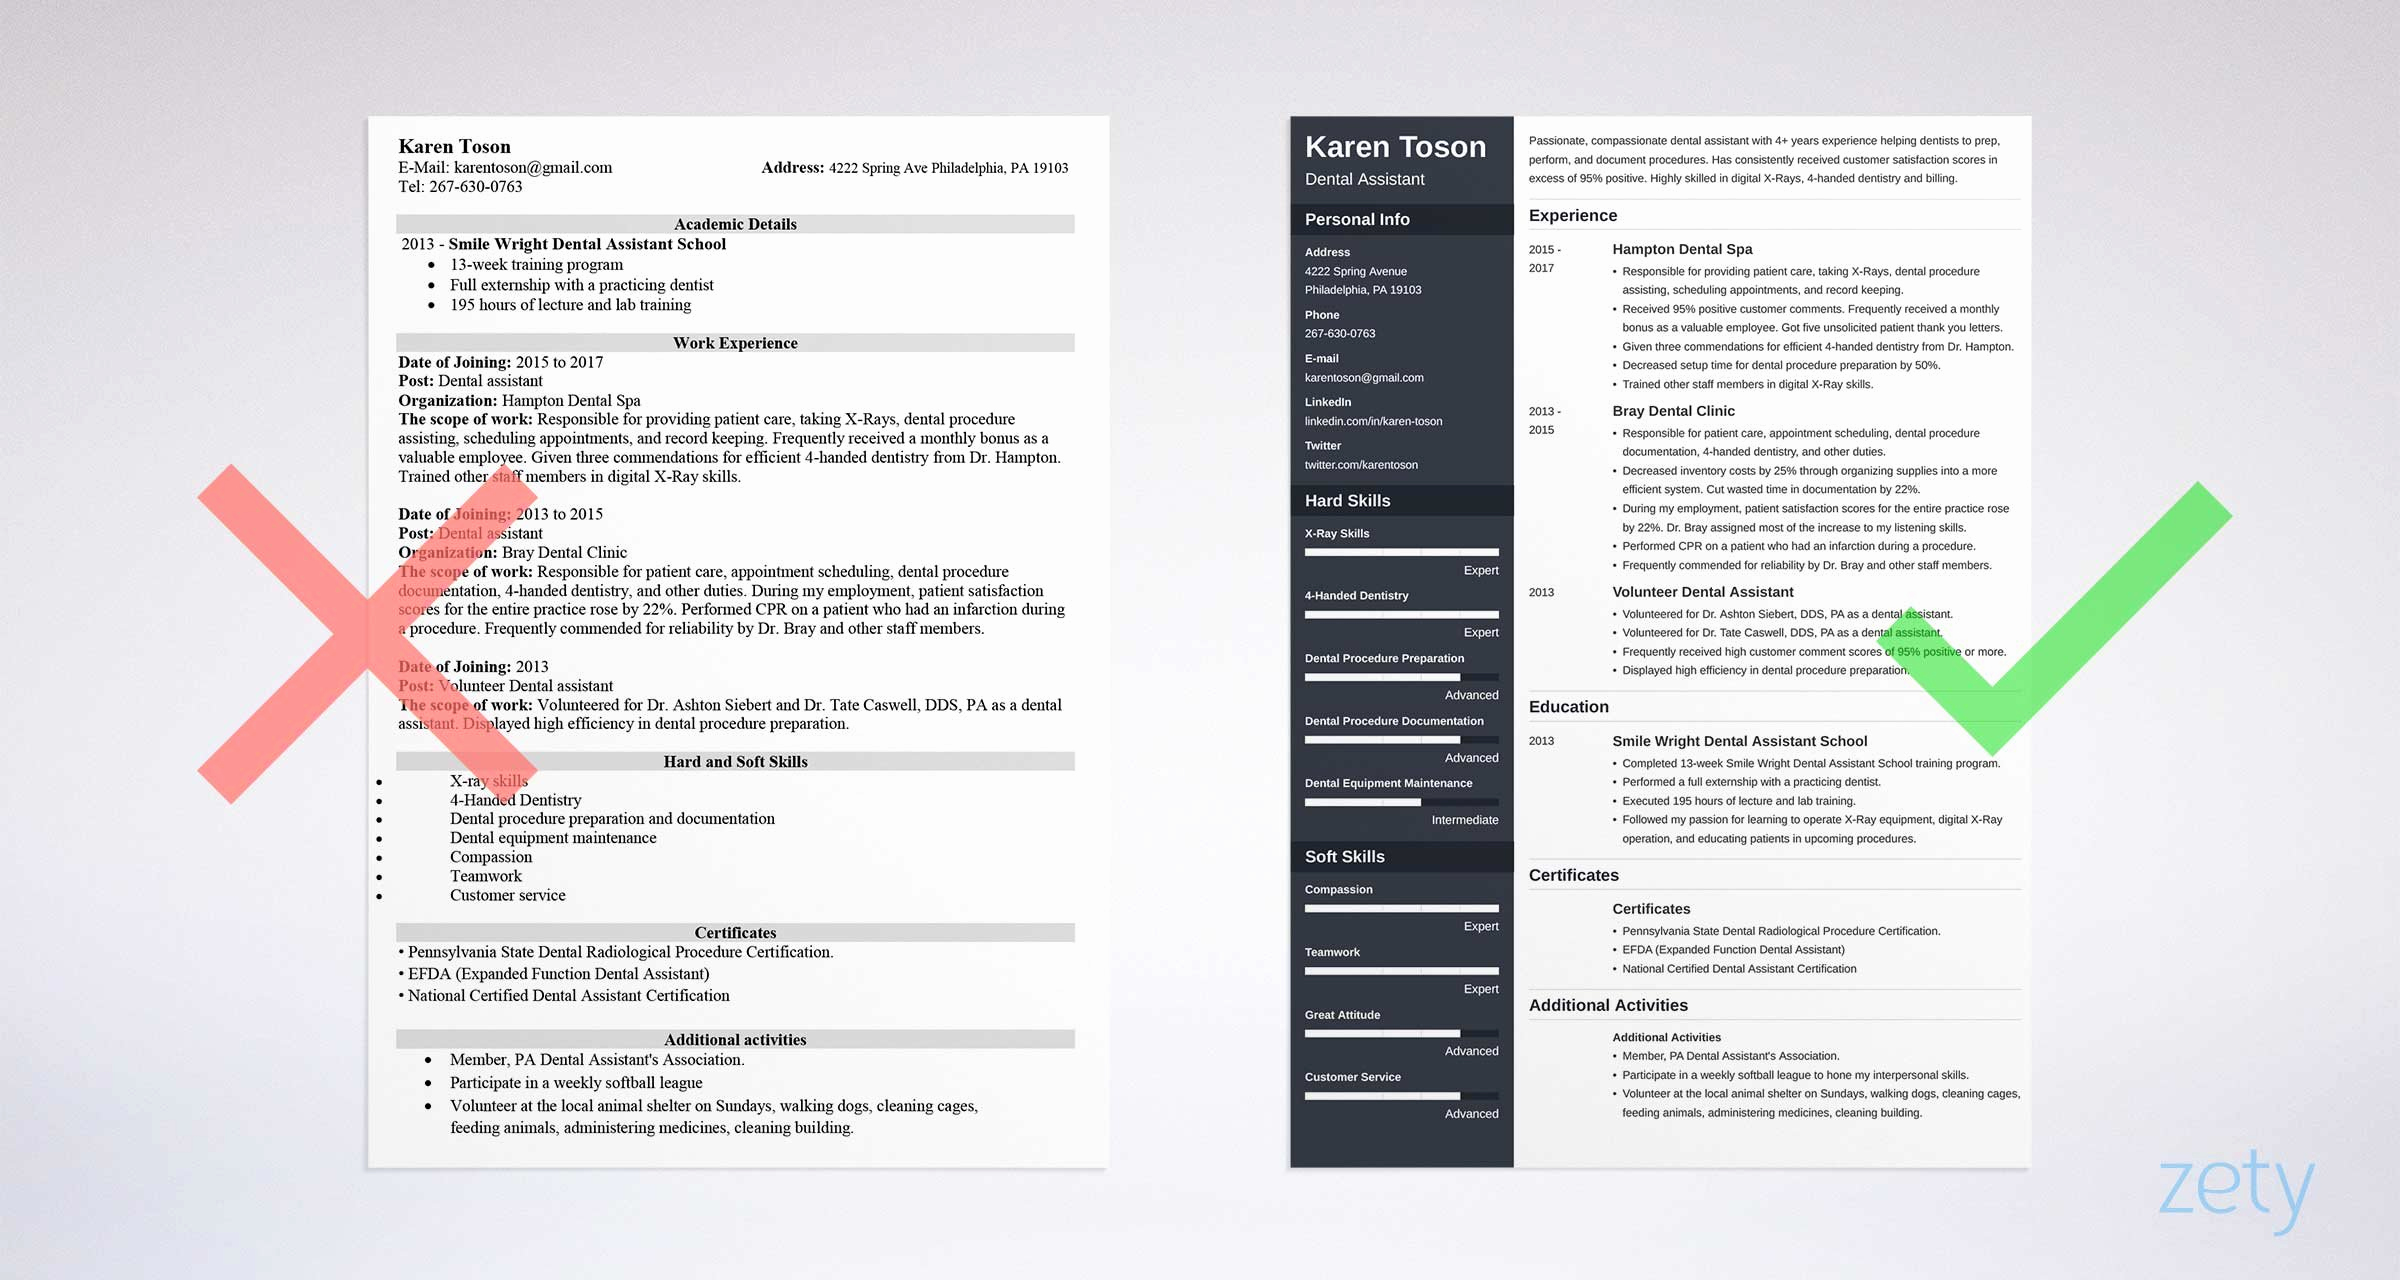 One Page Resume Template Free Fresh E Page Resume Templates 15 Examples to Download and Use now